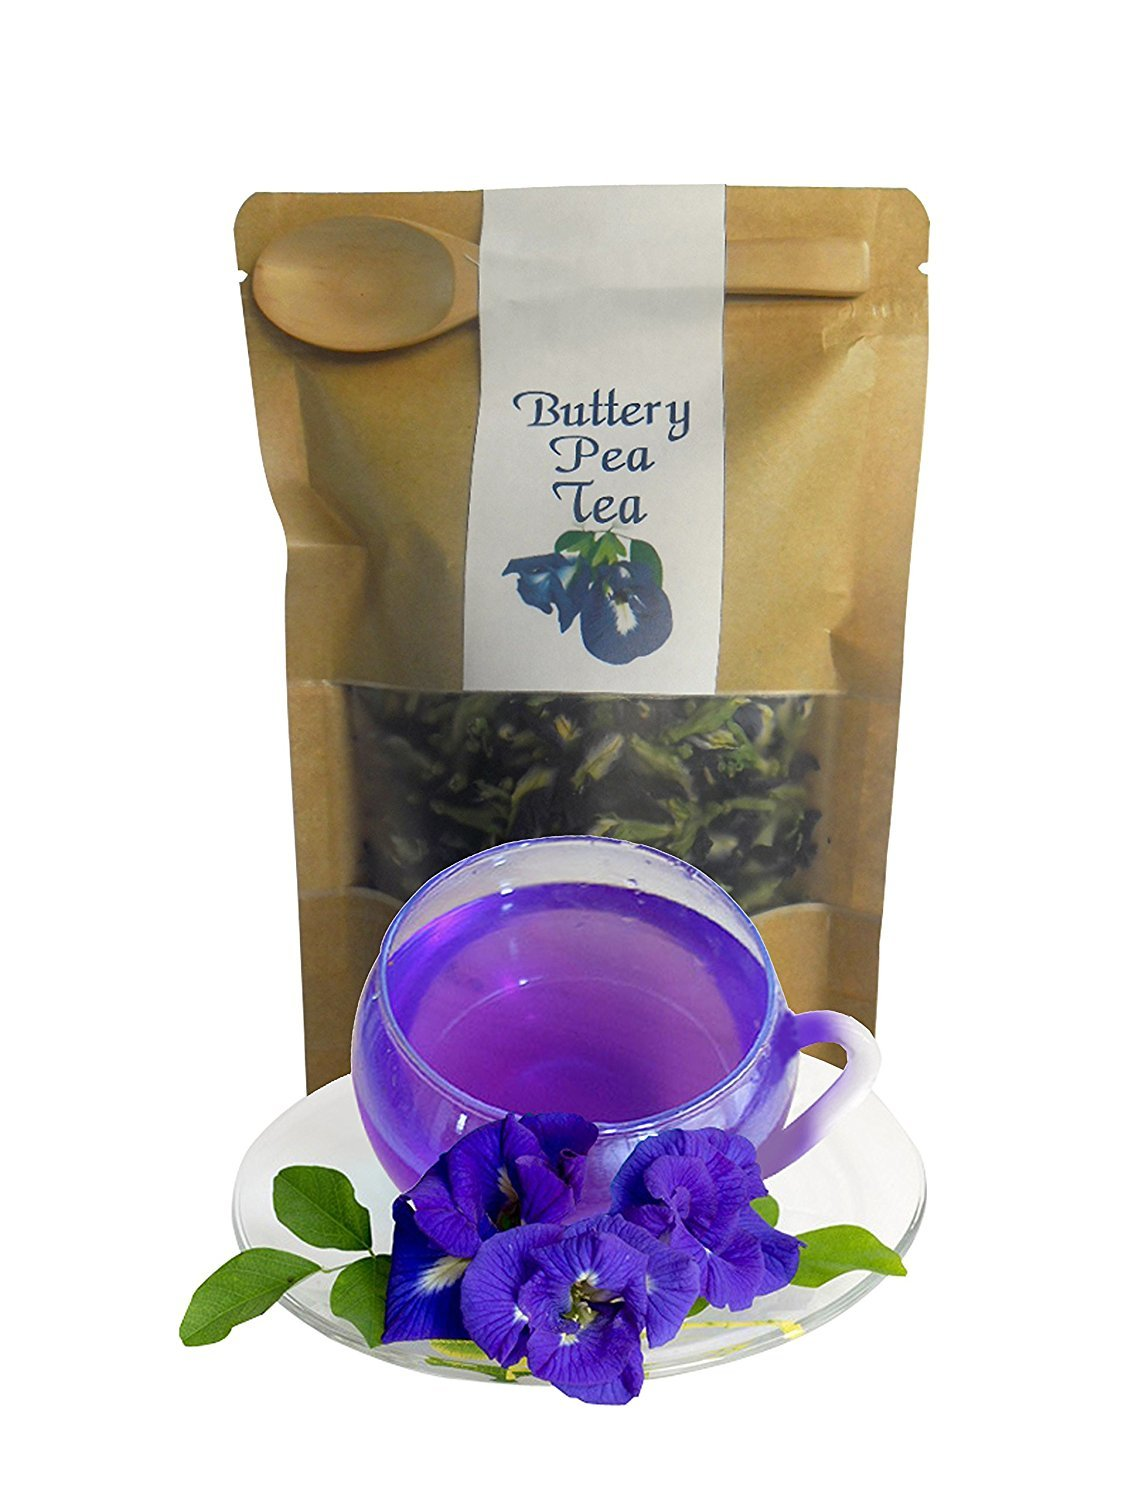 Organic Dried Butterfly Pea Flowers Product of Thailand 10,000g.(10kg.) by morning farm